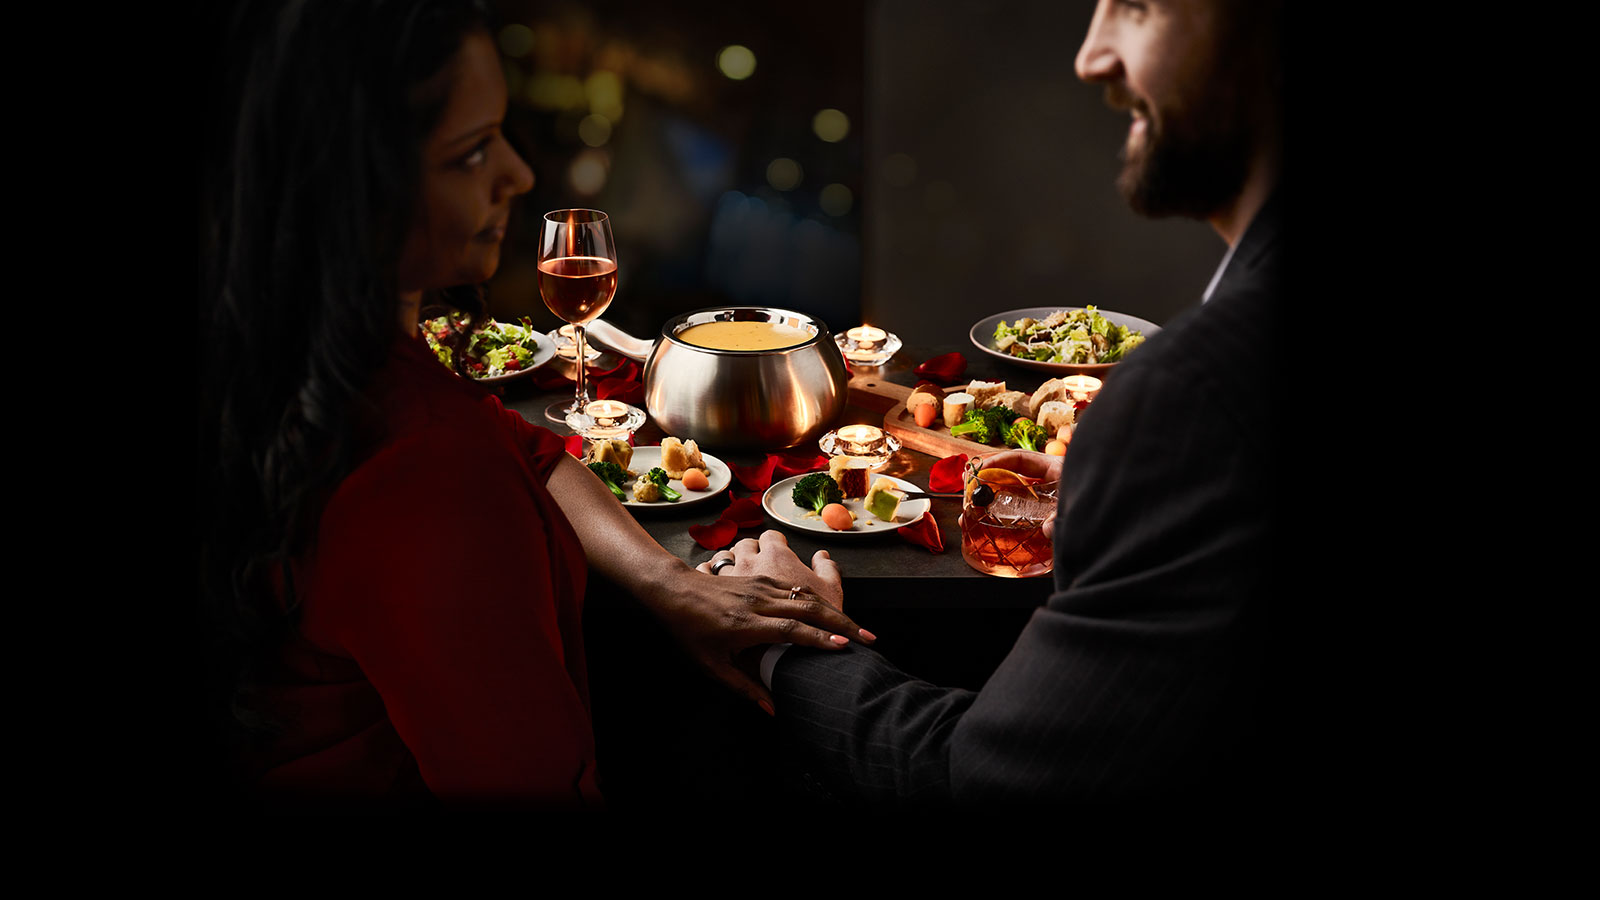 Thursdate date night table for two